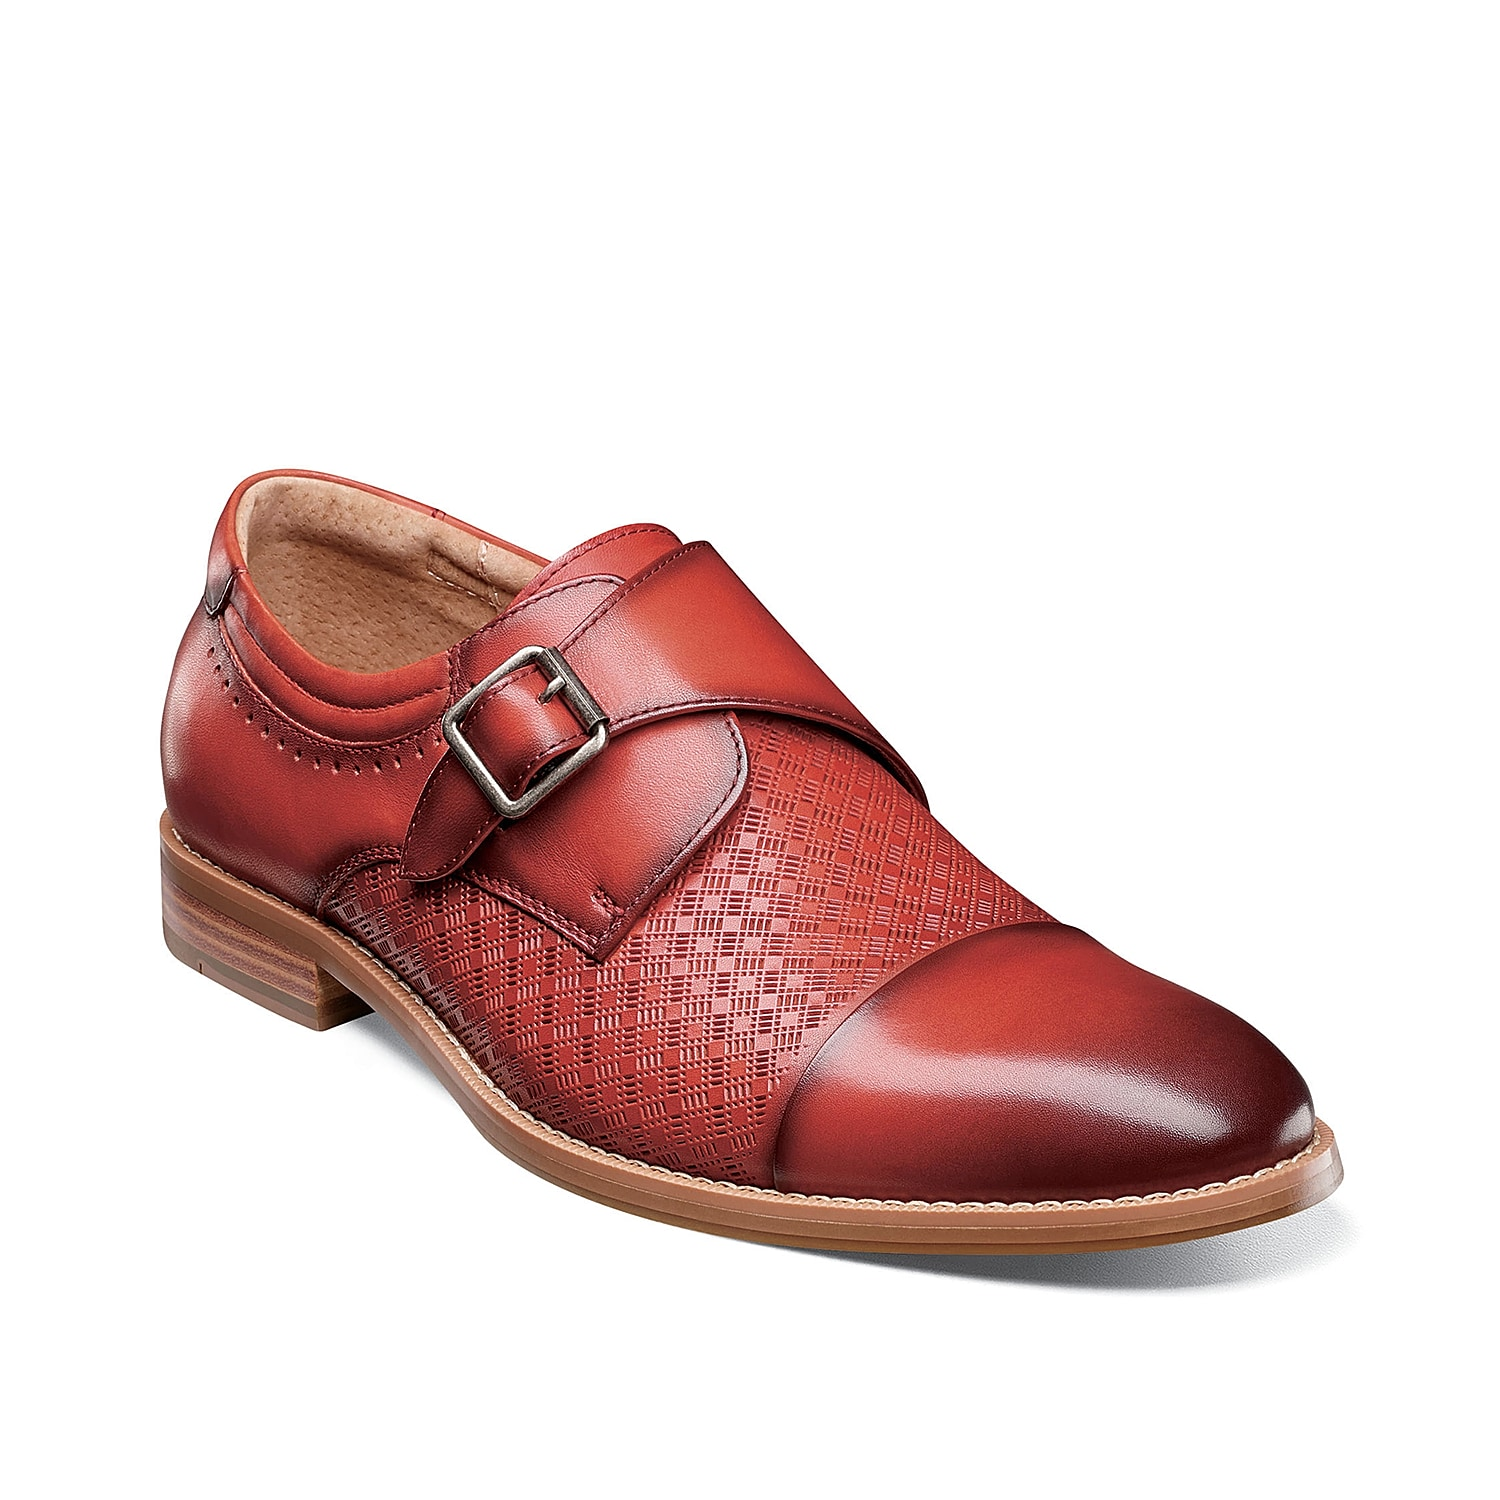 Styled with a striking mix of smooth and textured leather, the Fenwick dress shoes from Stacy Adams are completed with a stacked block heel, perforations, and subtle burnishing at the toe.